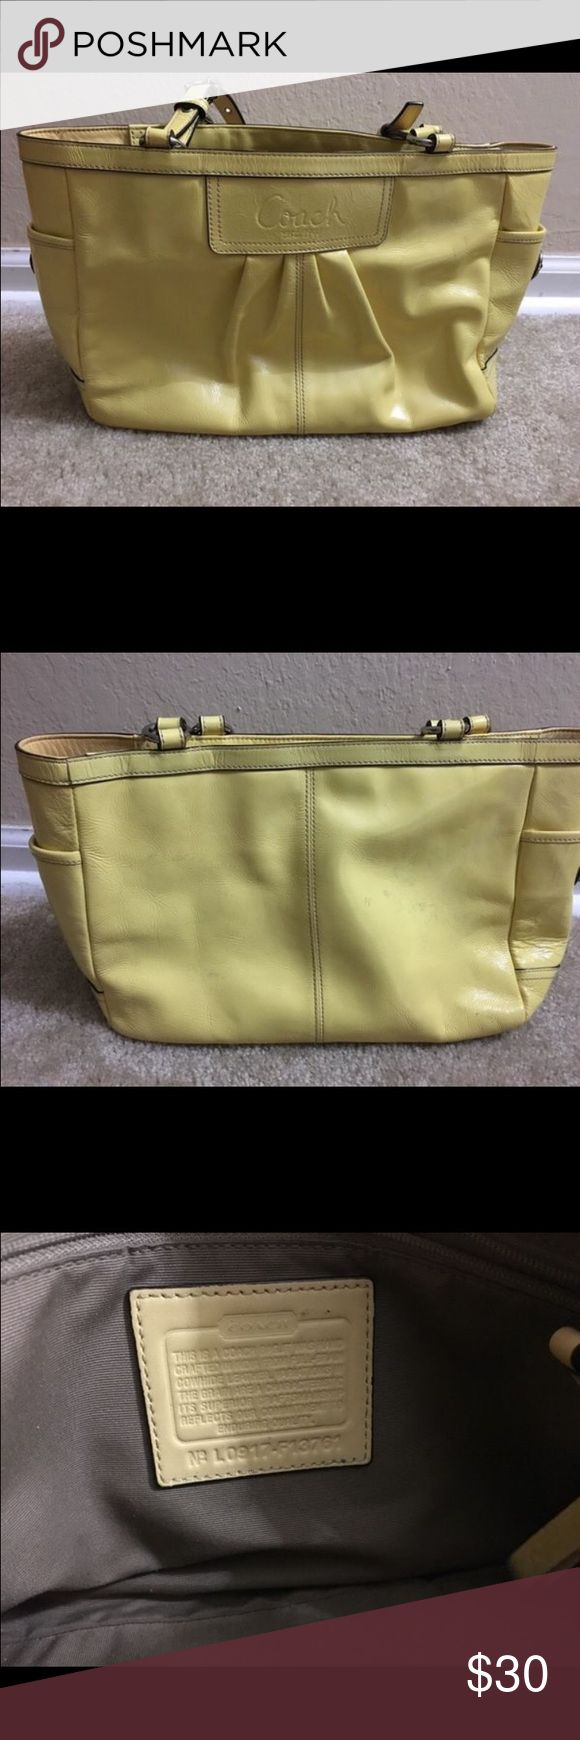 Yellow coach purse Yellow coach purse. In good condition a few dirty marks but can be cleaned. Coach Bags Shoulder Bags